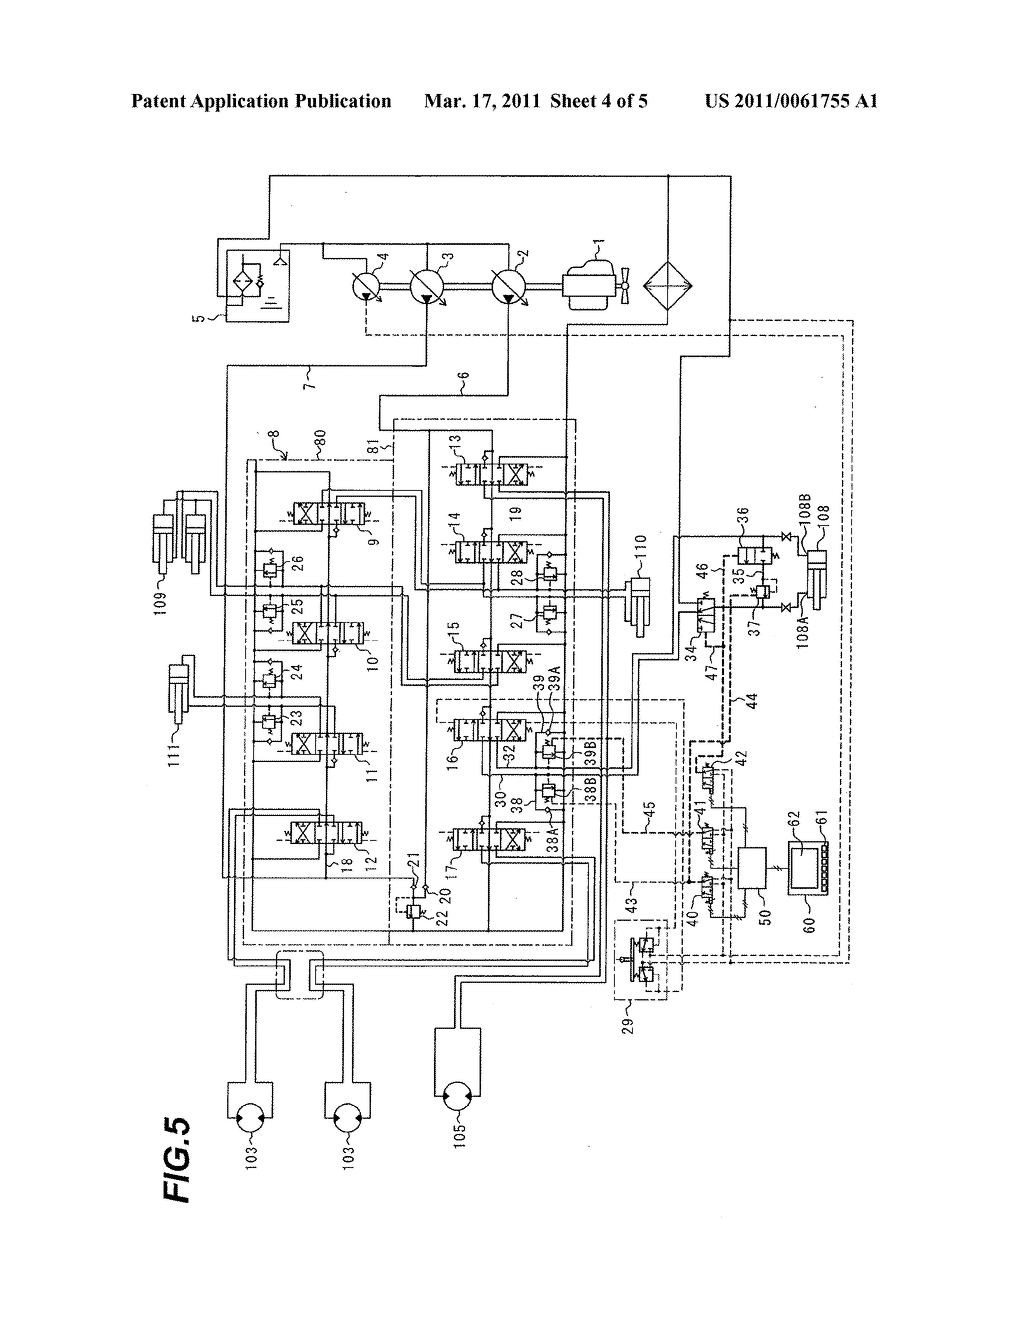 Bobcat 331 Hydraulic Diagram Diagram Wiring Diagram Images